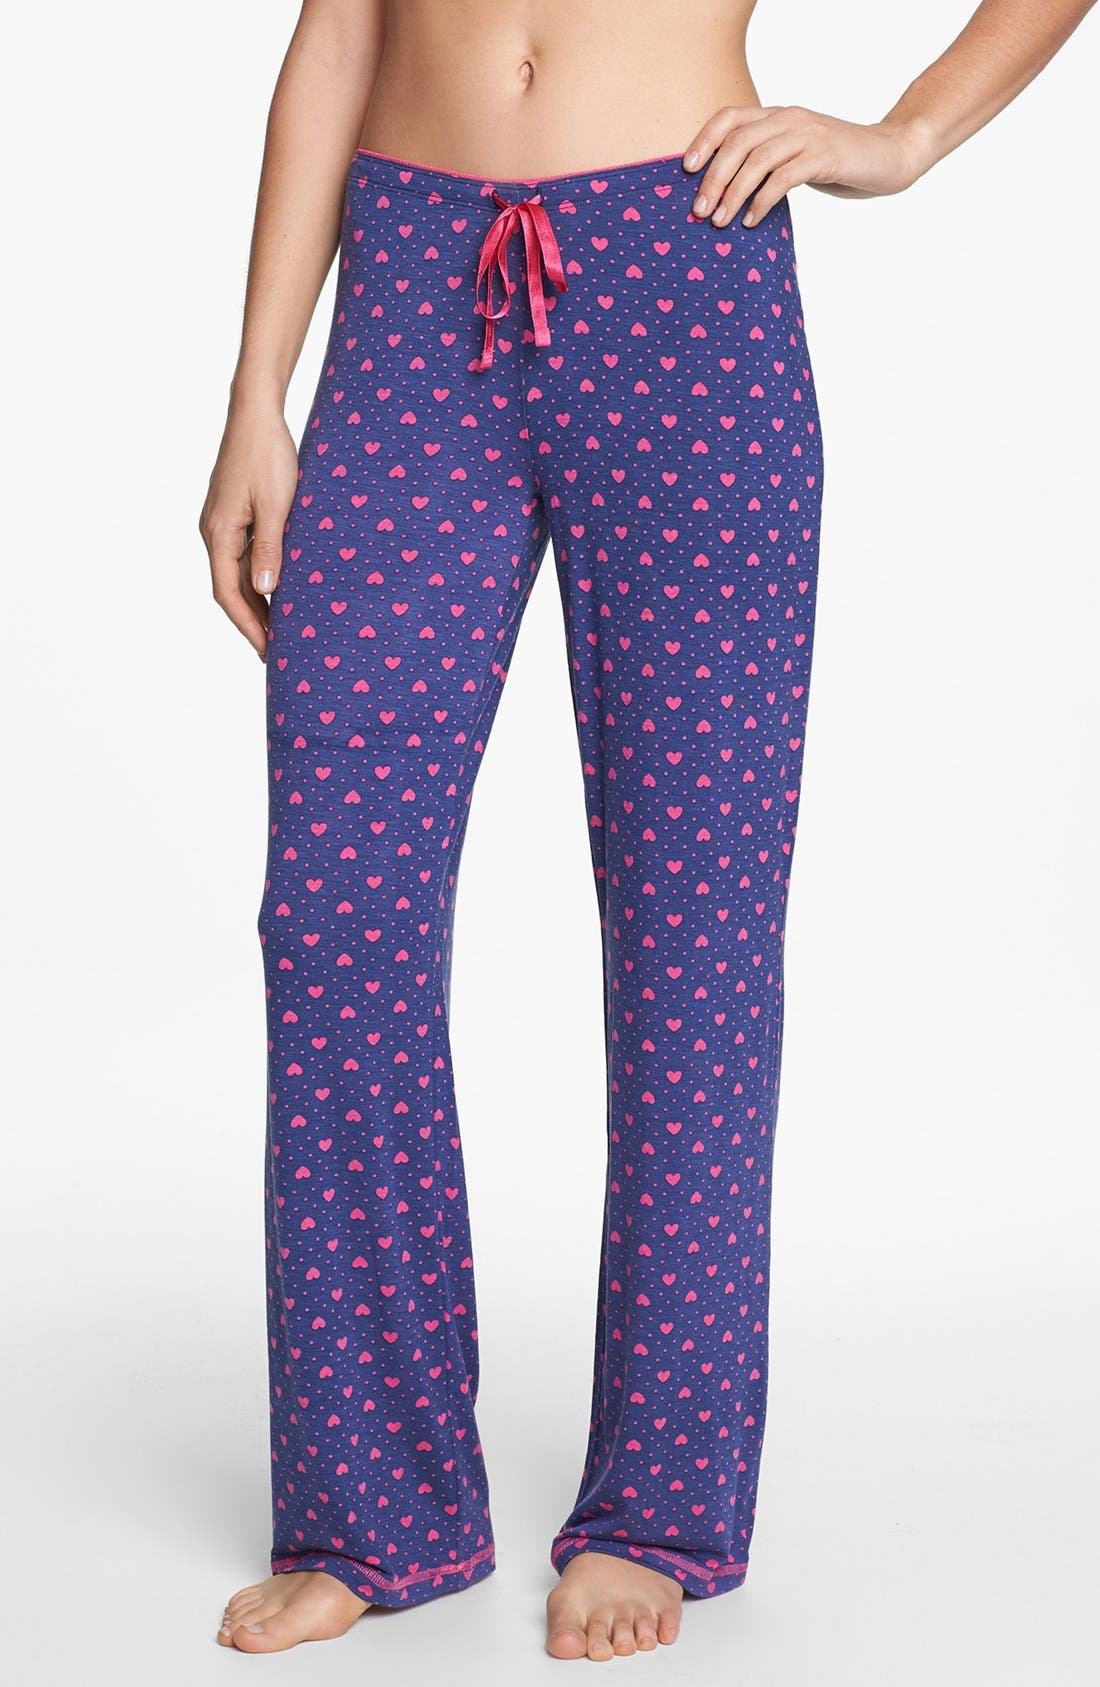 Alternate Image 1 Selected - PJ Salvage 'Queen of Hearts' Lounge Pants